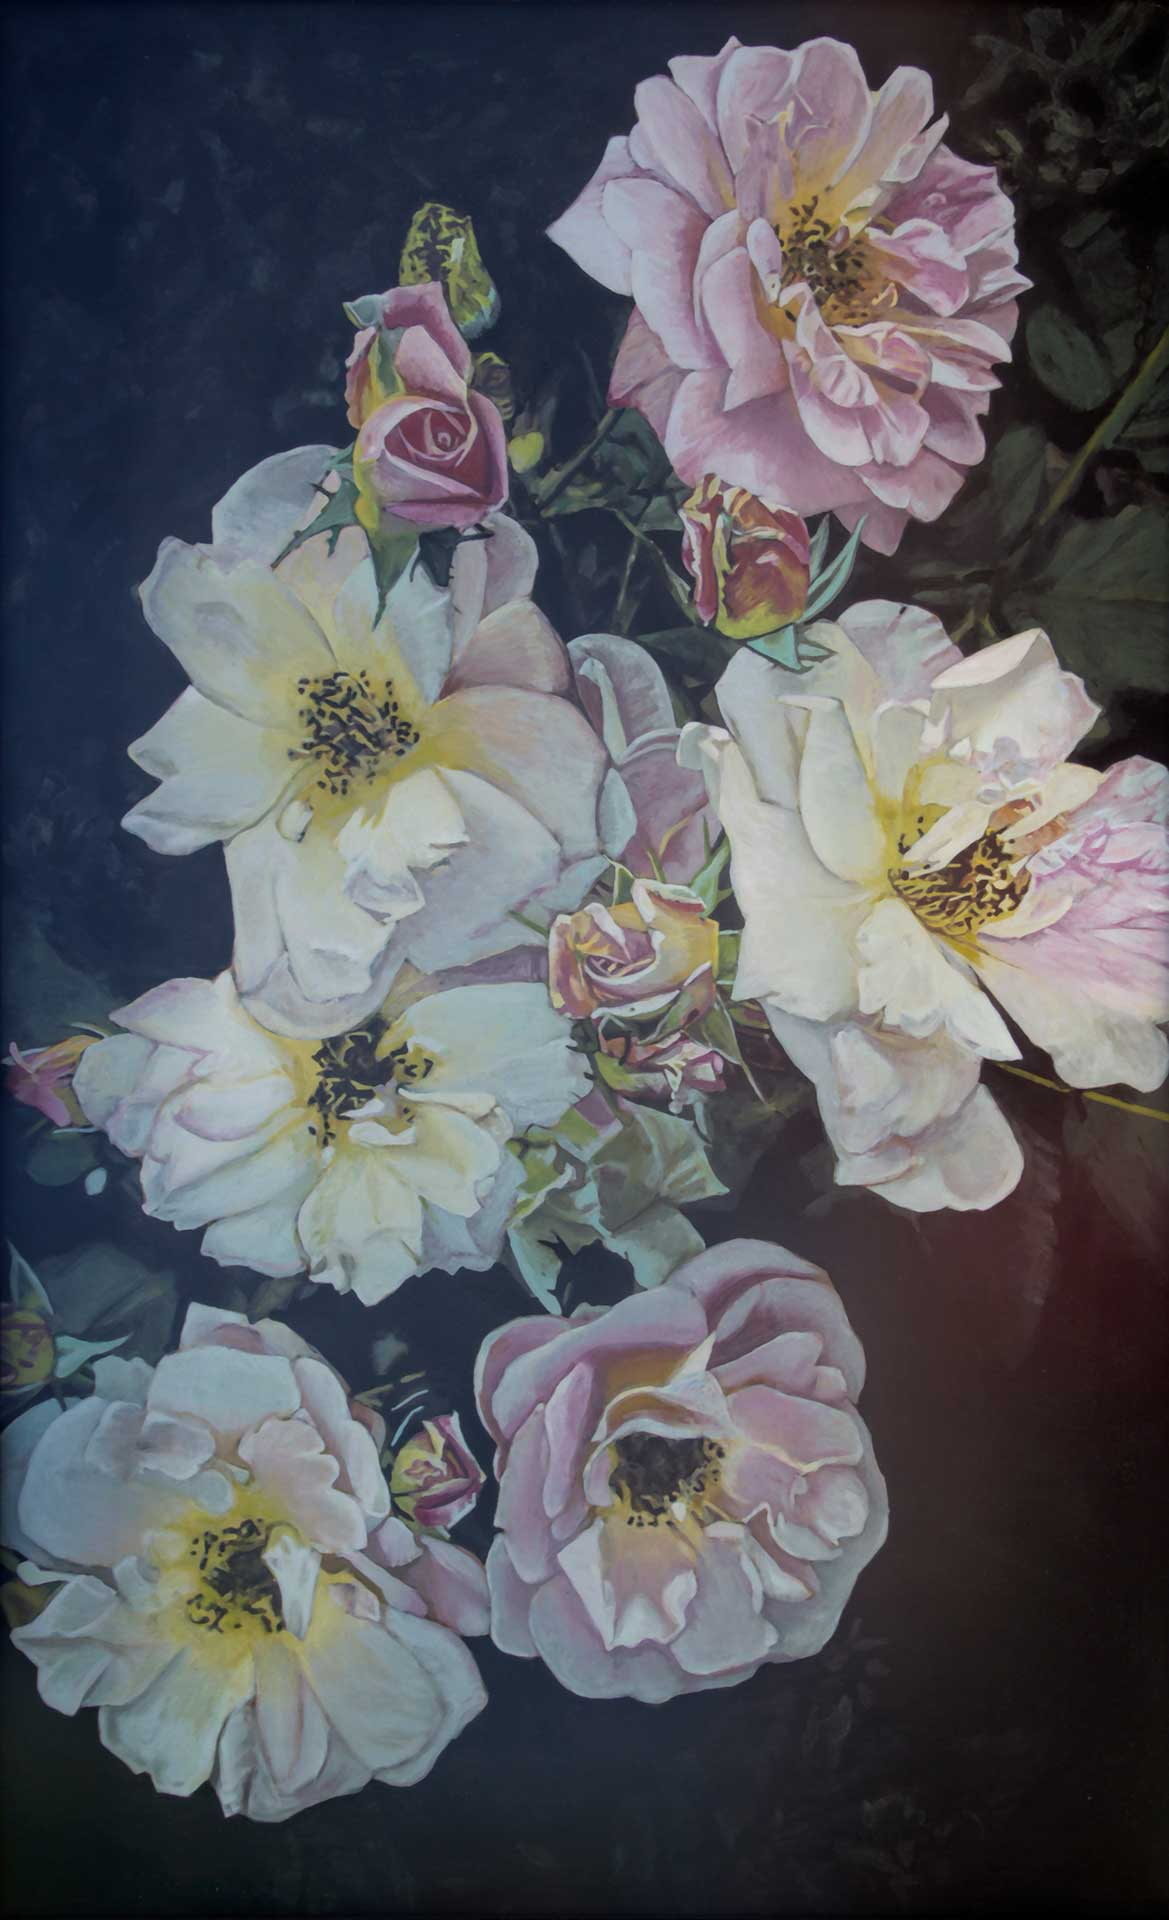 Photorealist painting - Flowers